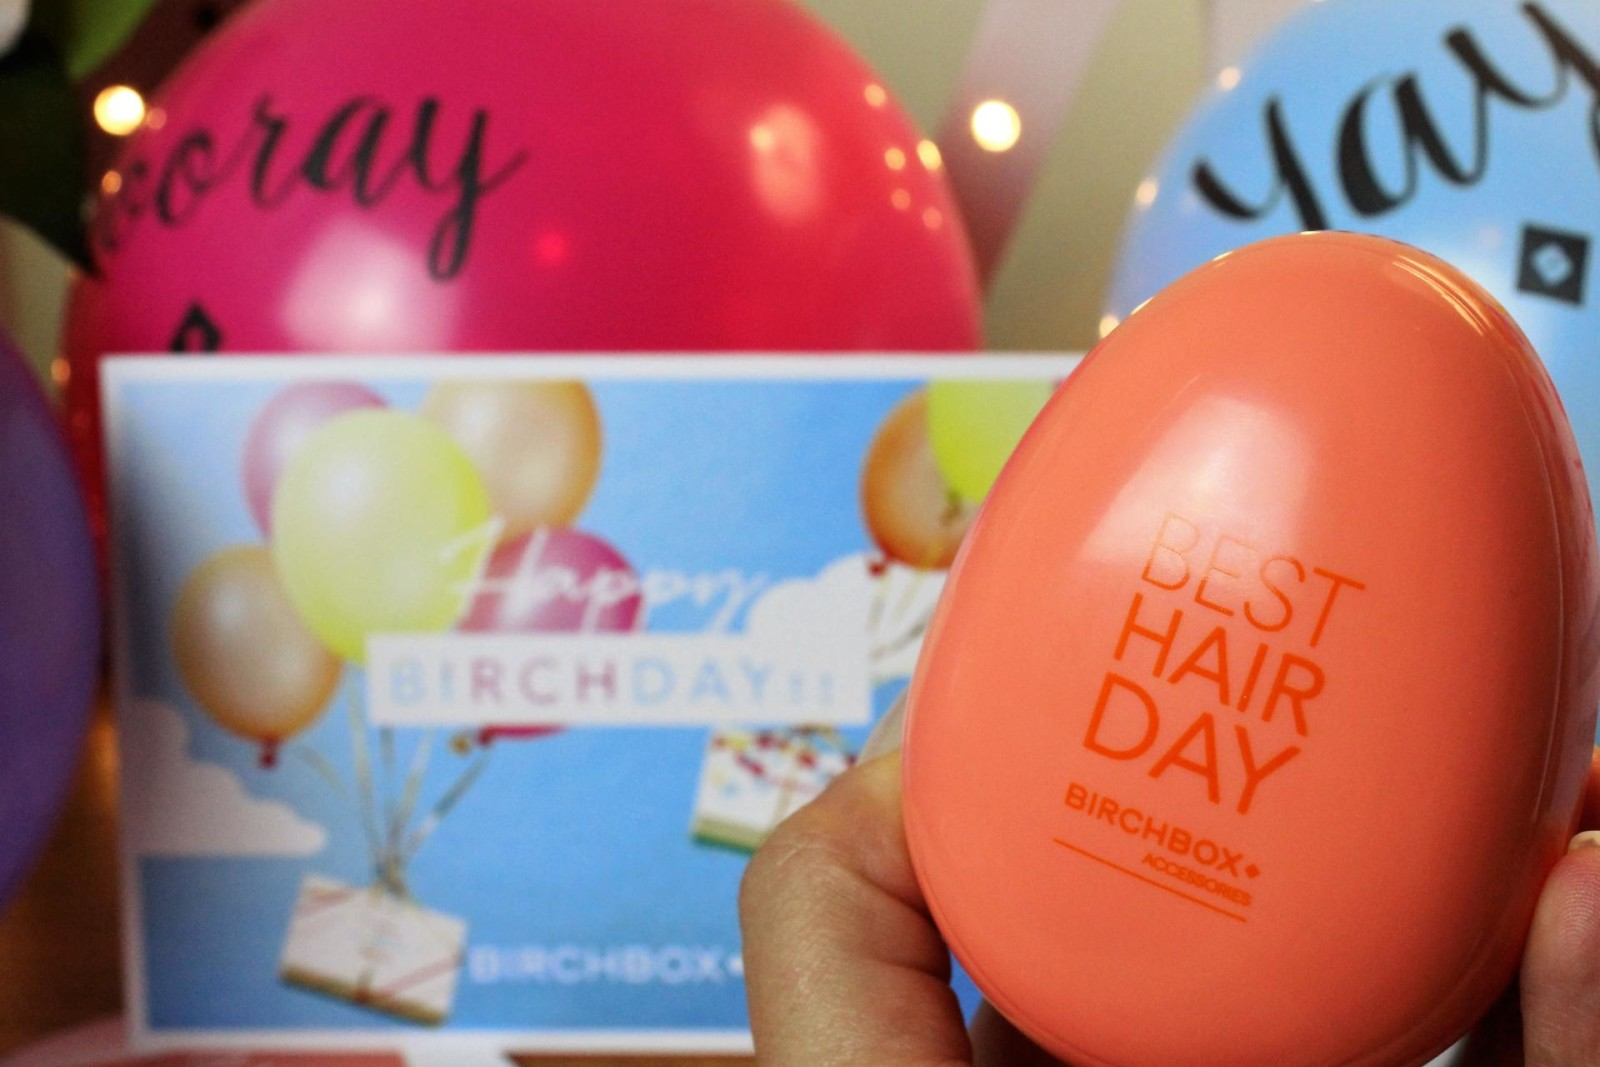 Happy Birthday Birchbox! September 2015